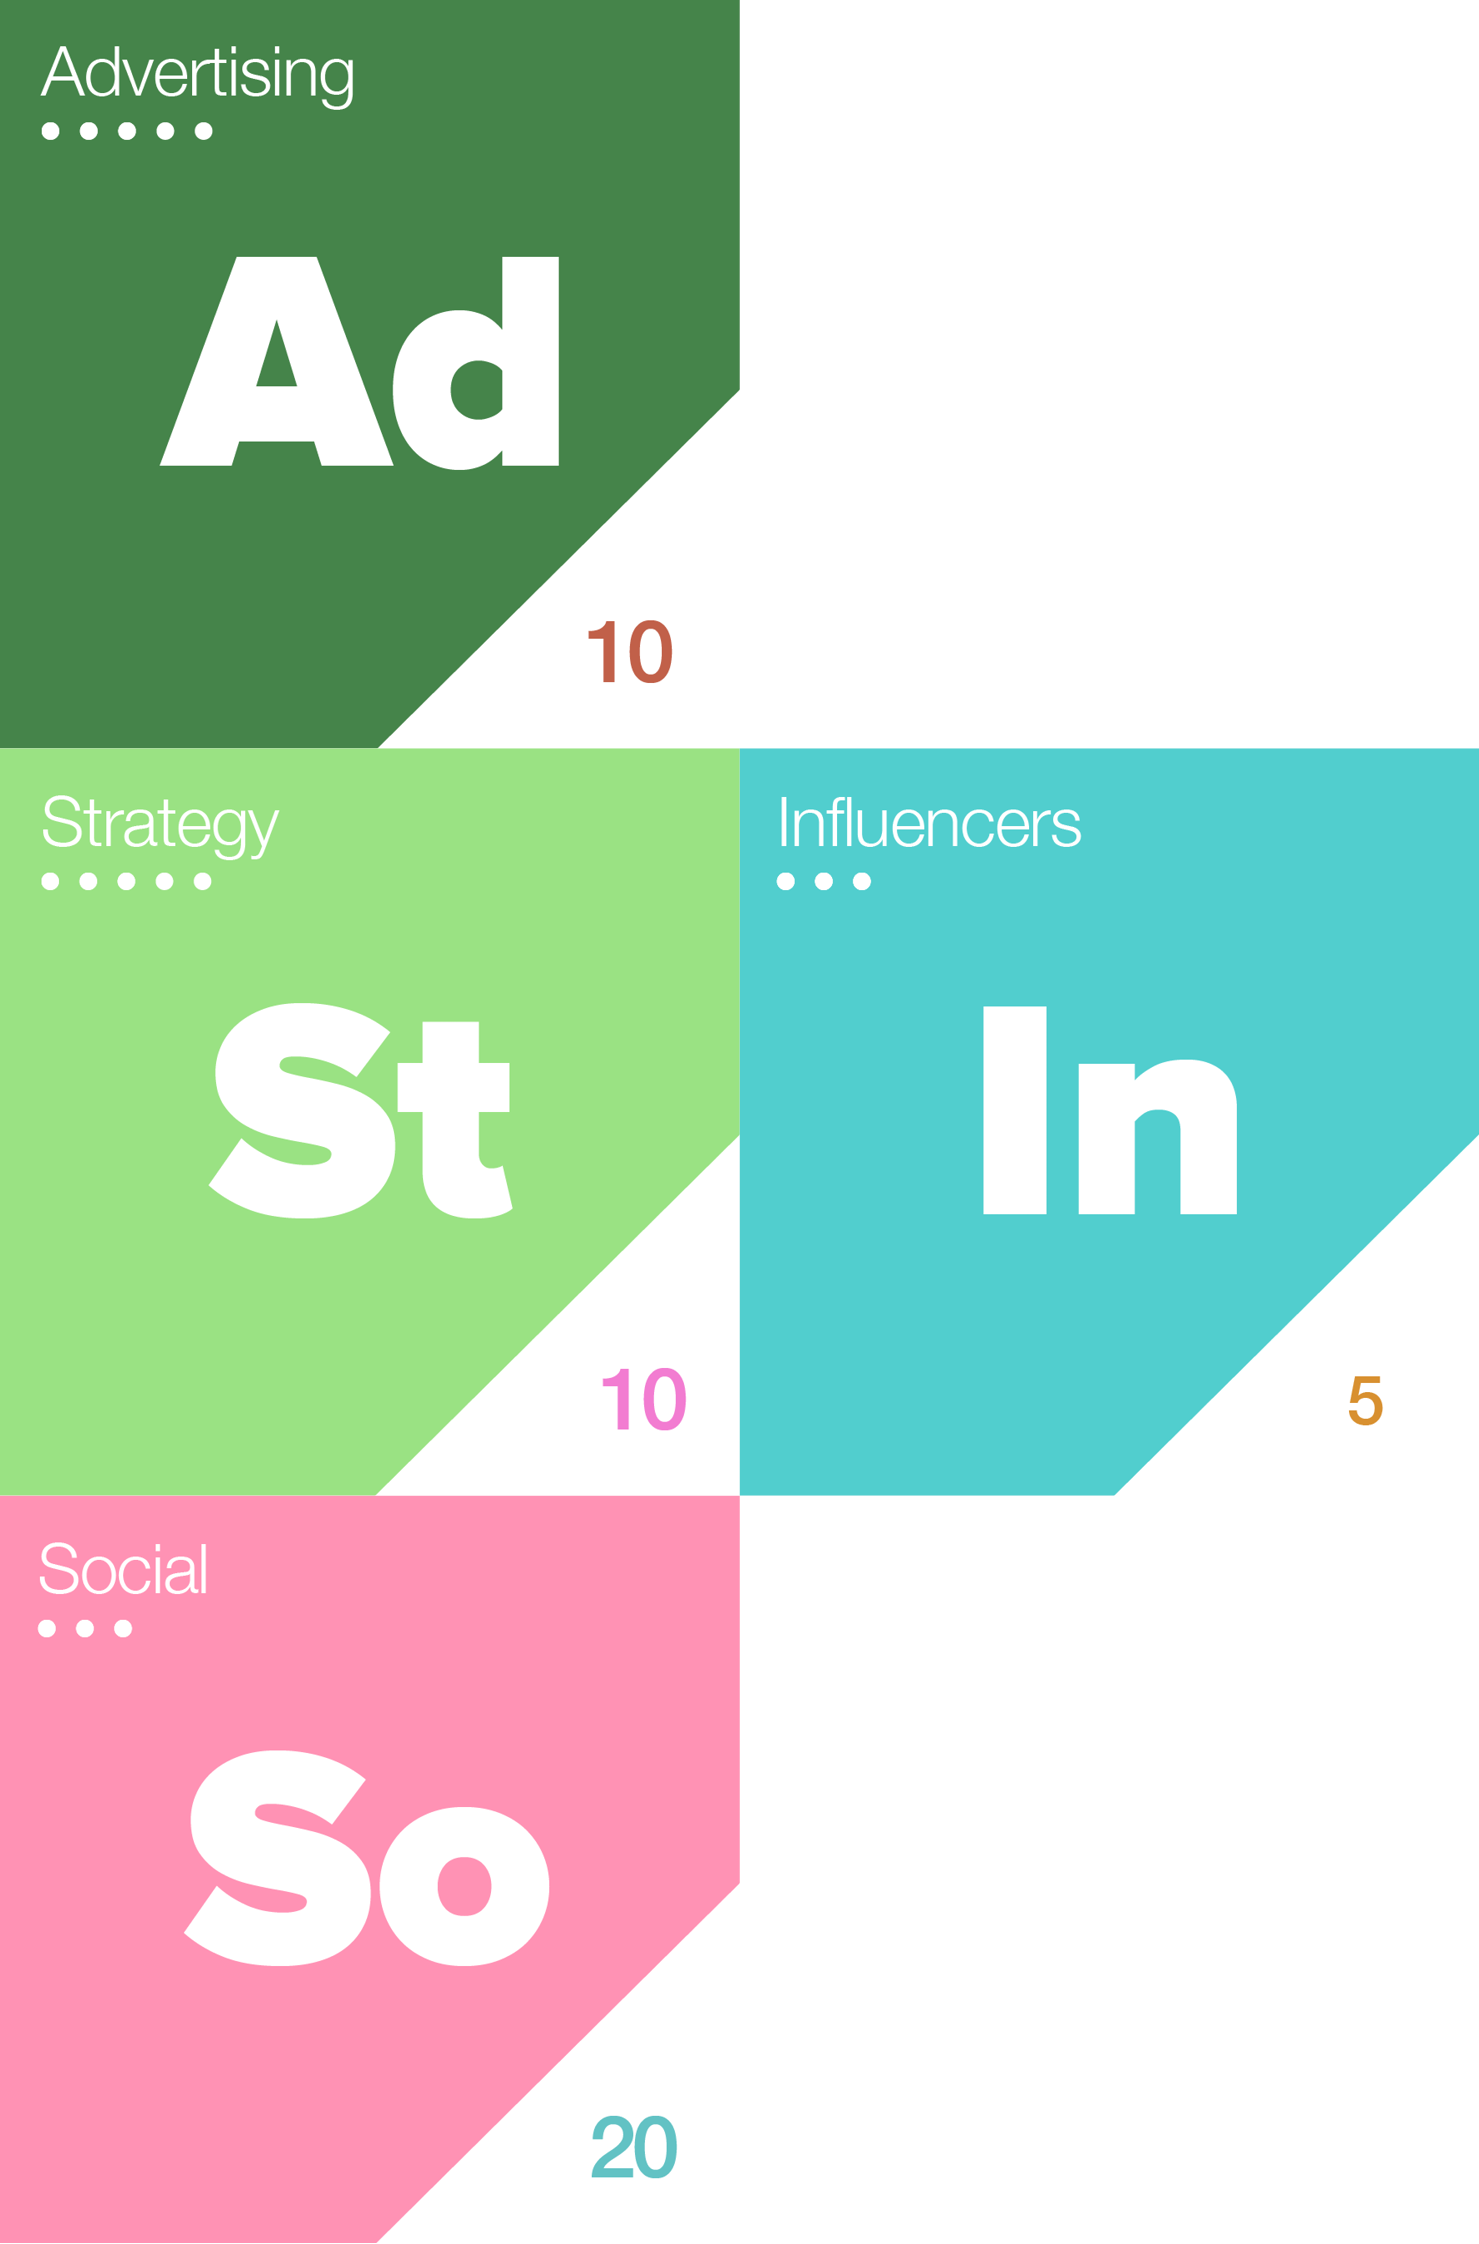 elements_packages_brands5.png